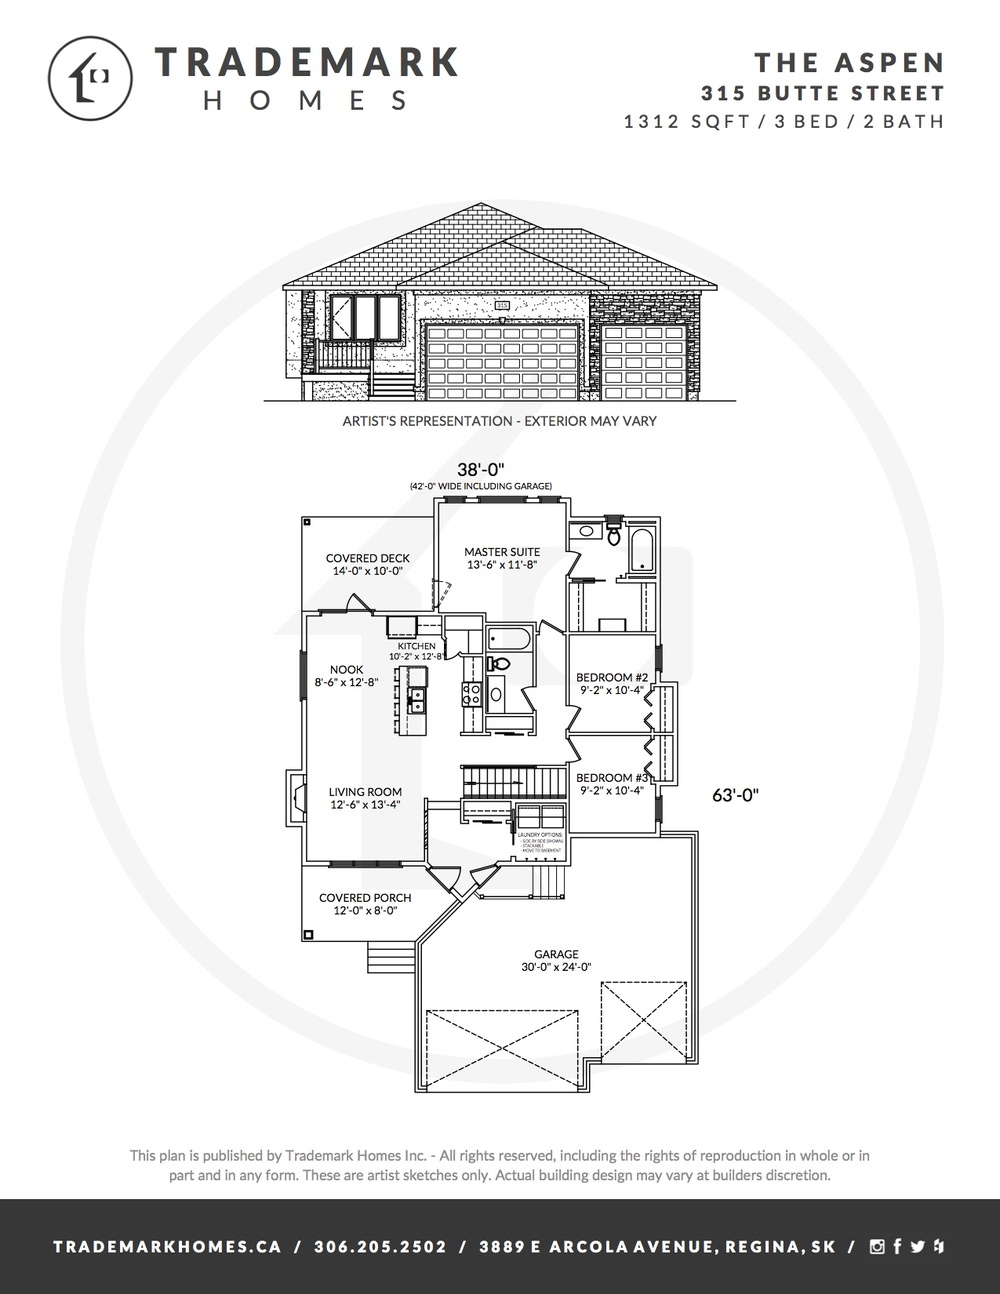 315 Butte St - The Aspen - Floorplan - Pilot Butte